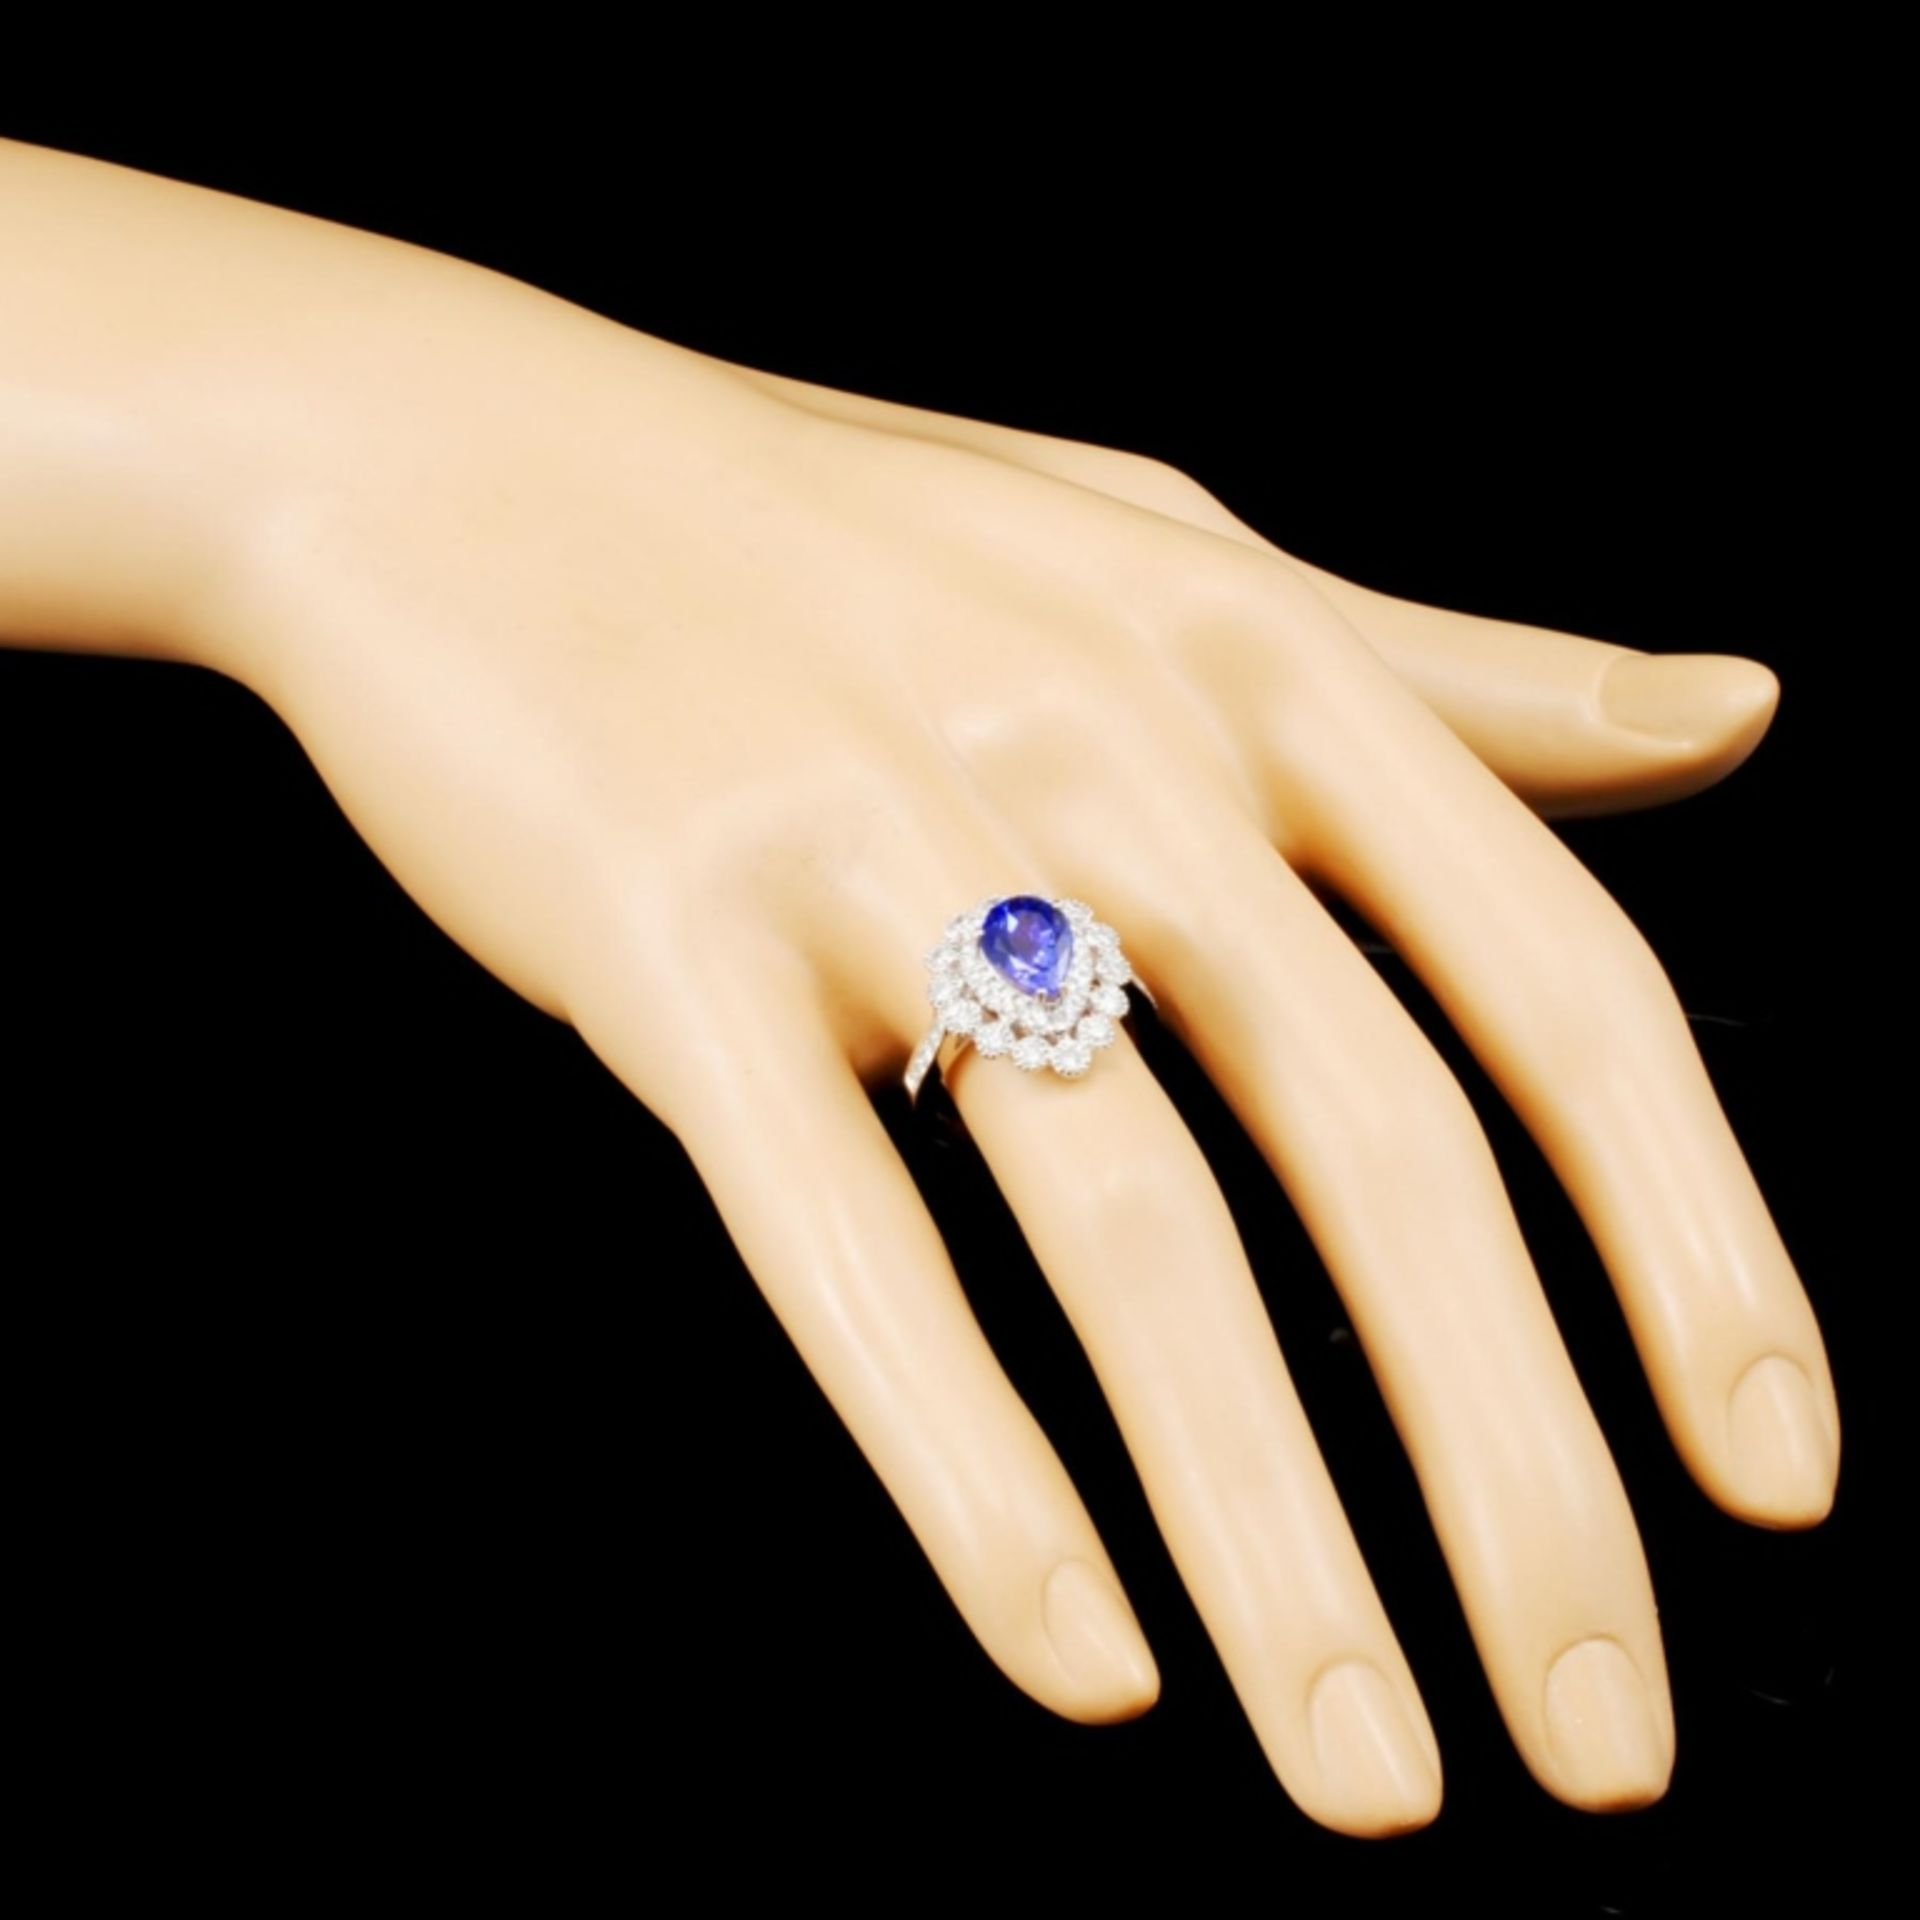 18K Gold 1.95ct Tanzanite & 0.87ctw Diamond Ring - Image 3 of 5